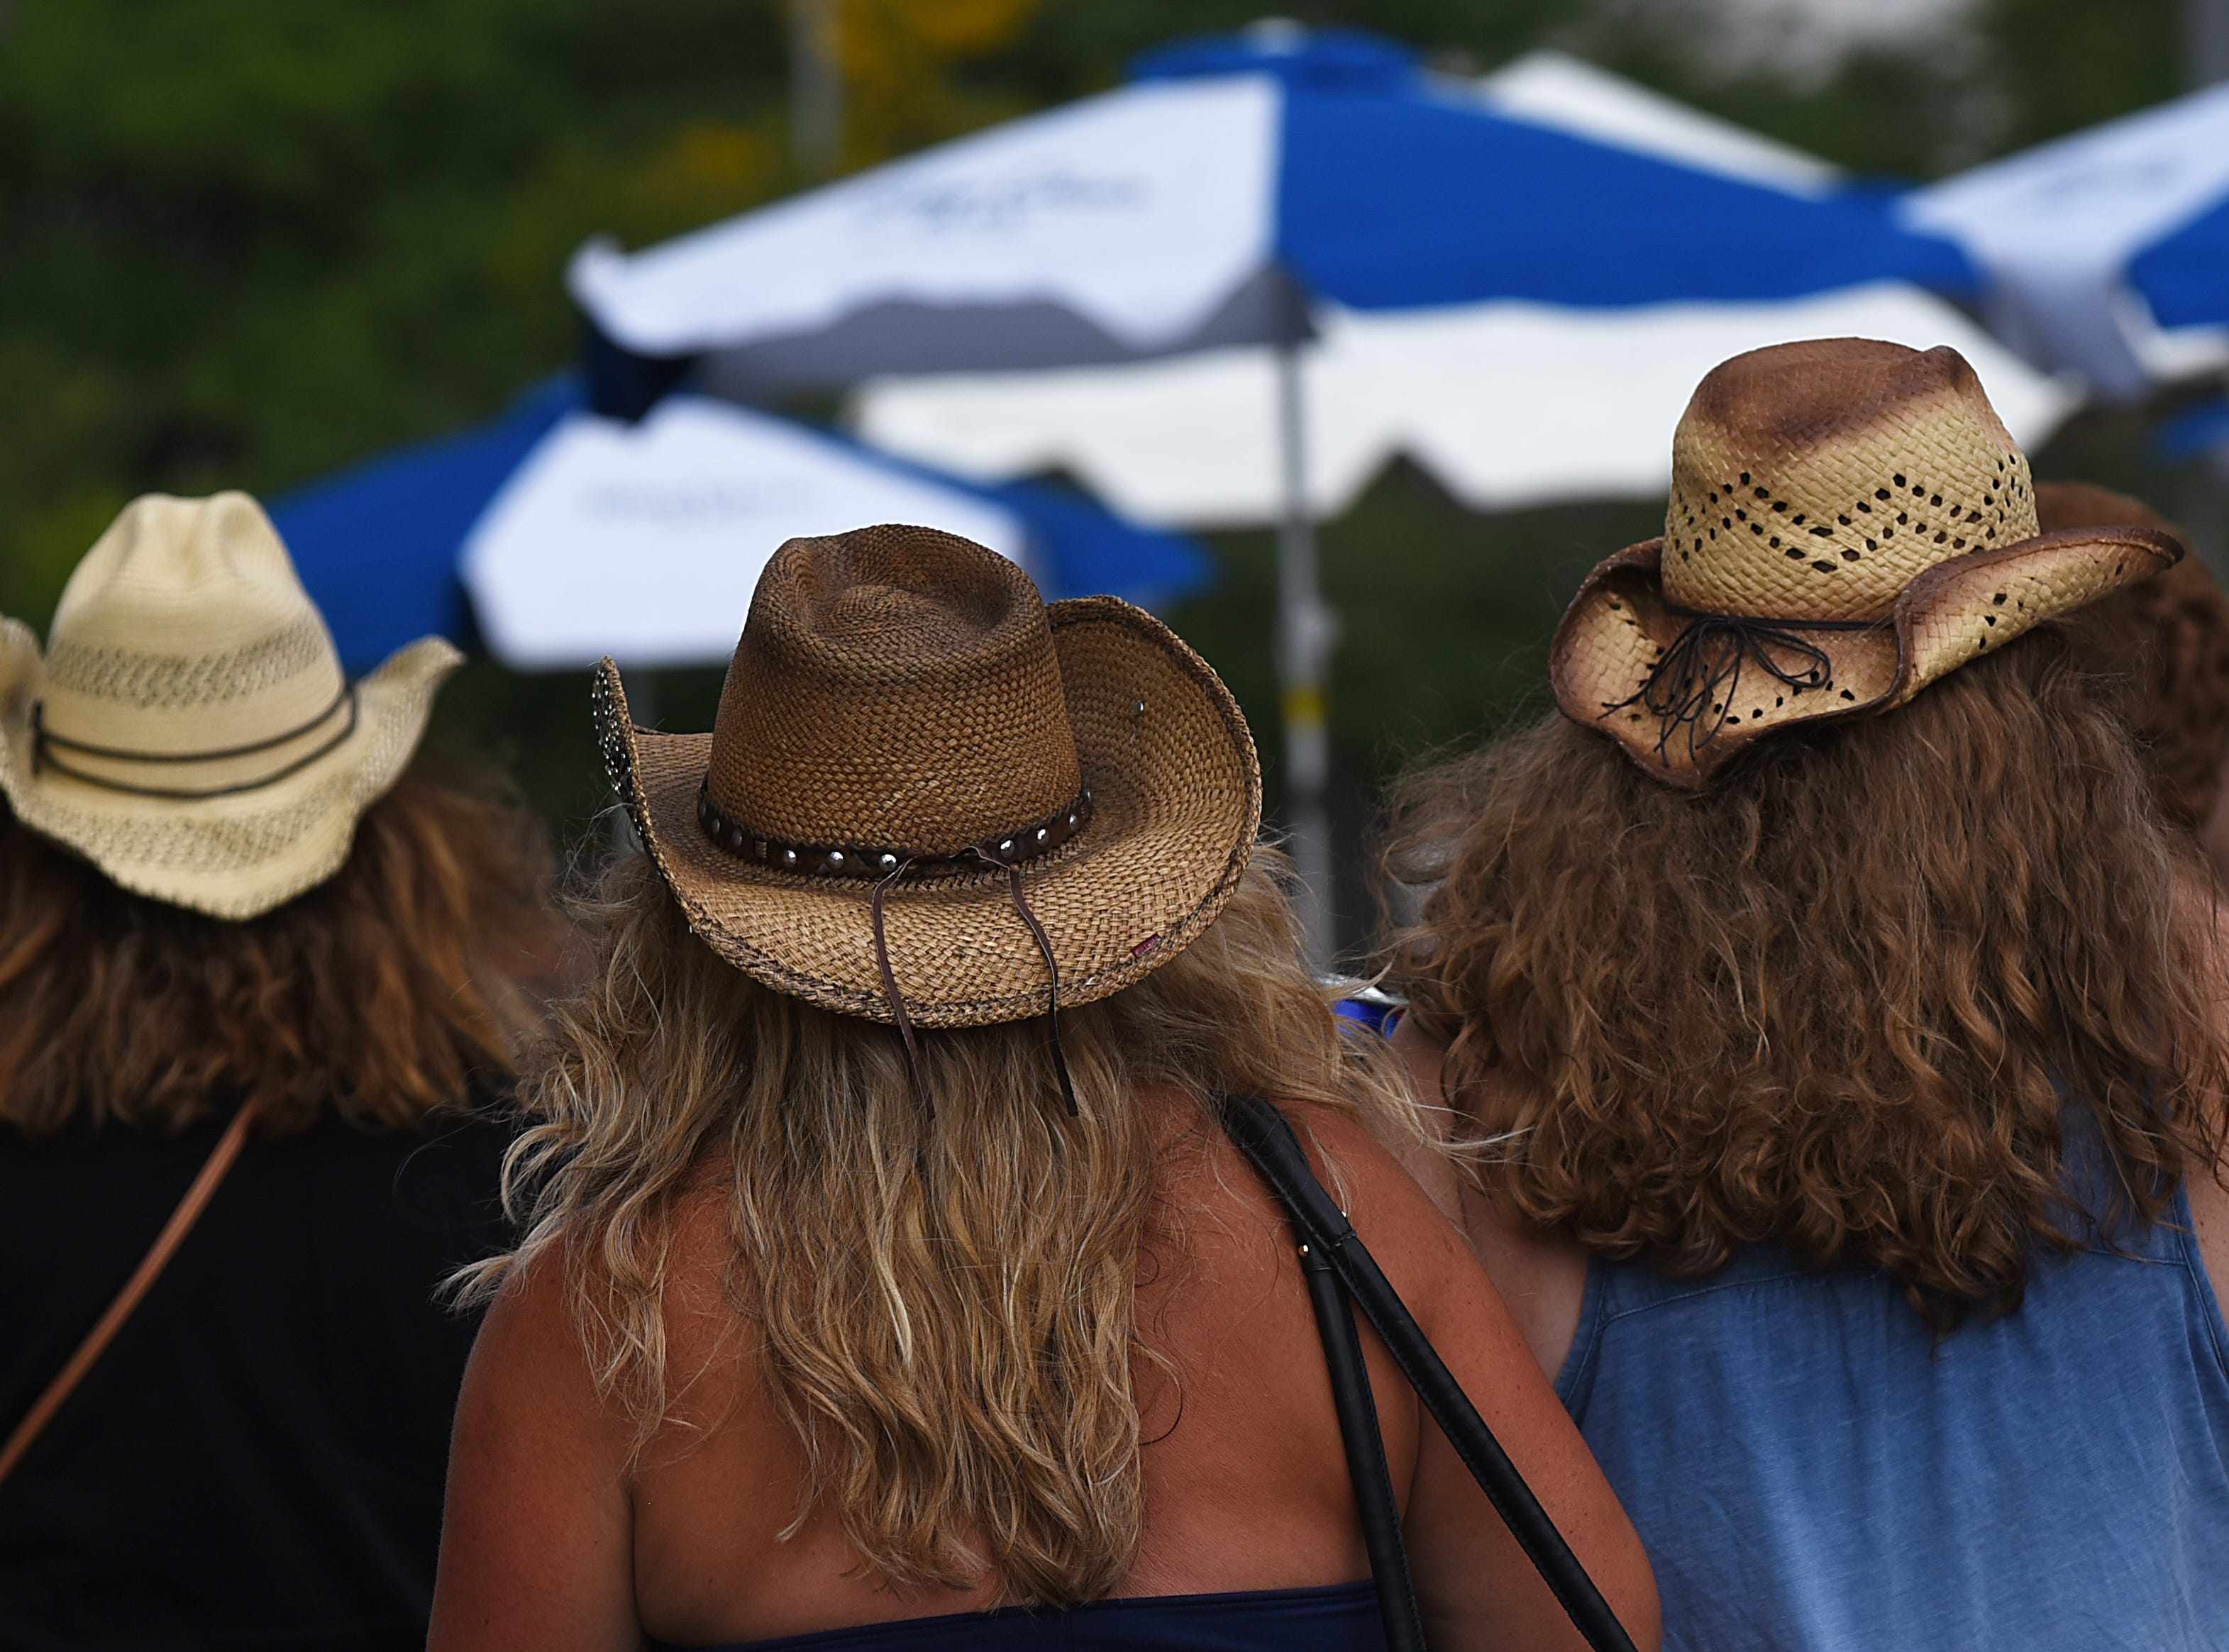 Cowboy hats at the Kenny Chesney concert at MetLife stadium in East Rutherford on Saturday August 18, 2018.